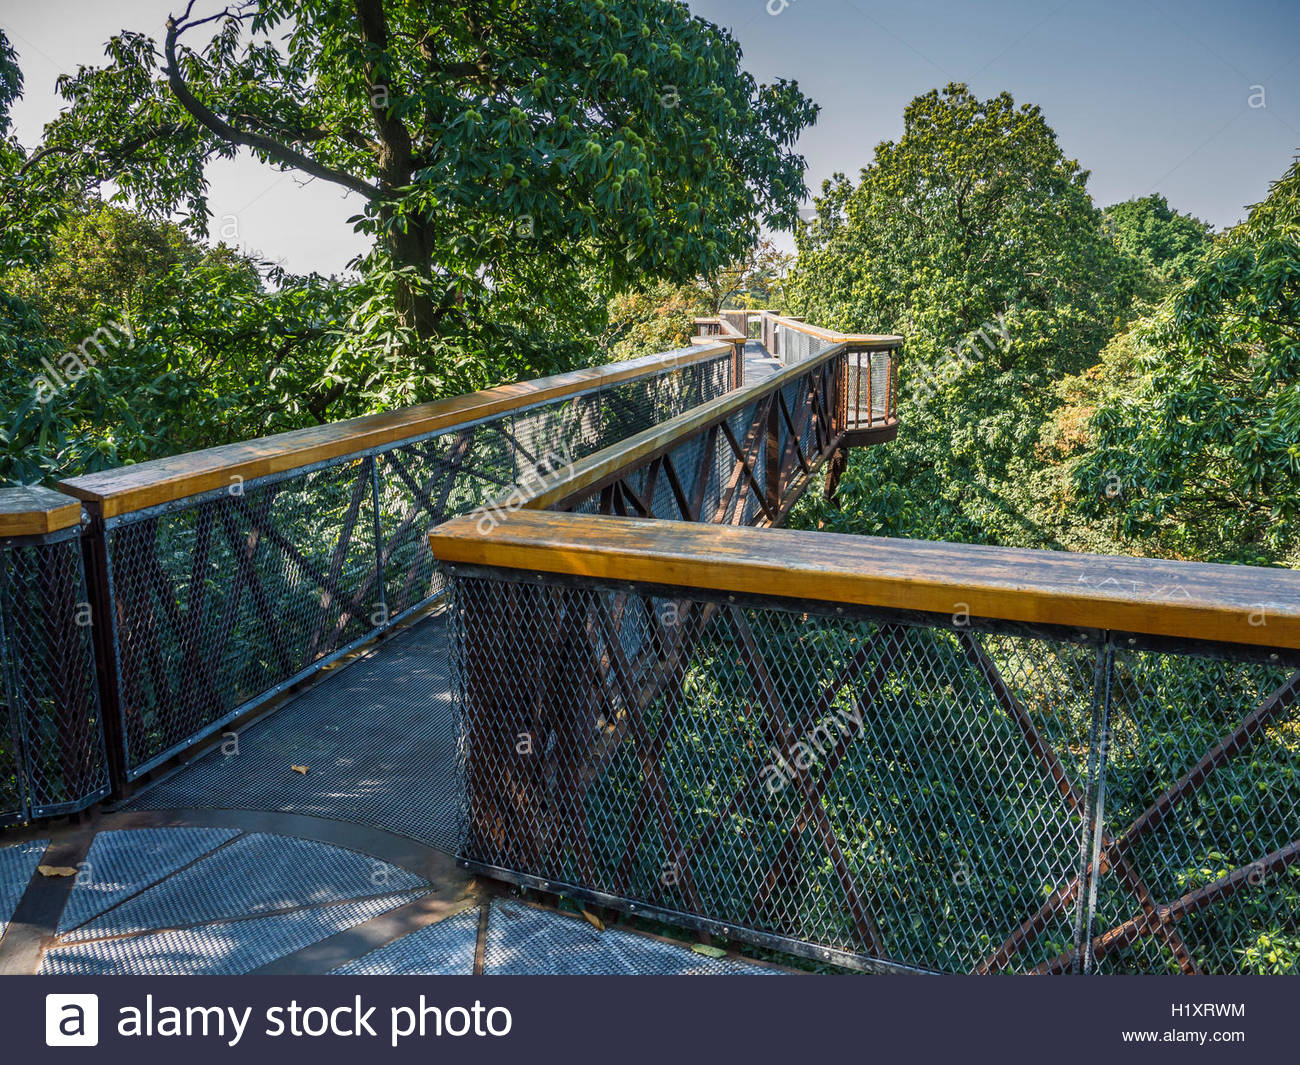 Kew Gardens Tree Top Walk Way Birds eye view of the canopy 18 metres high Oak Lime Chesnut trees - Stock Image